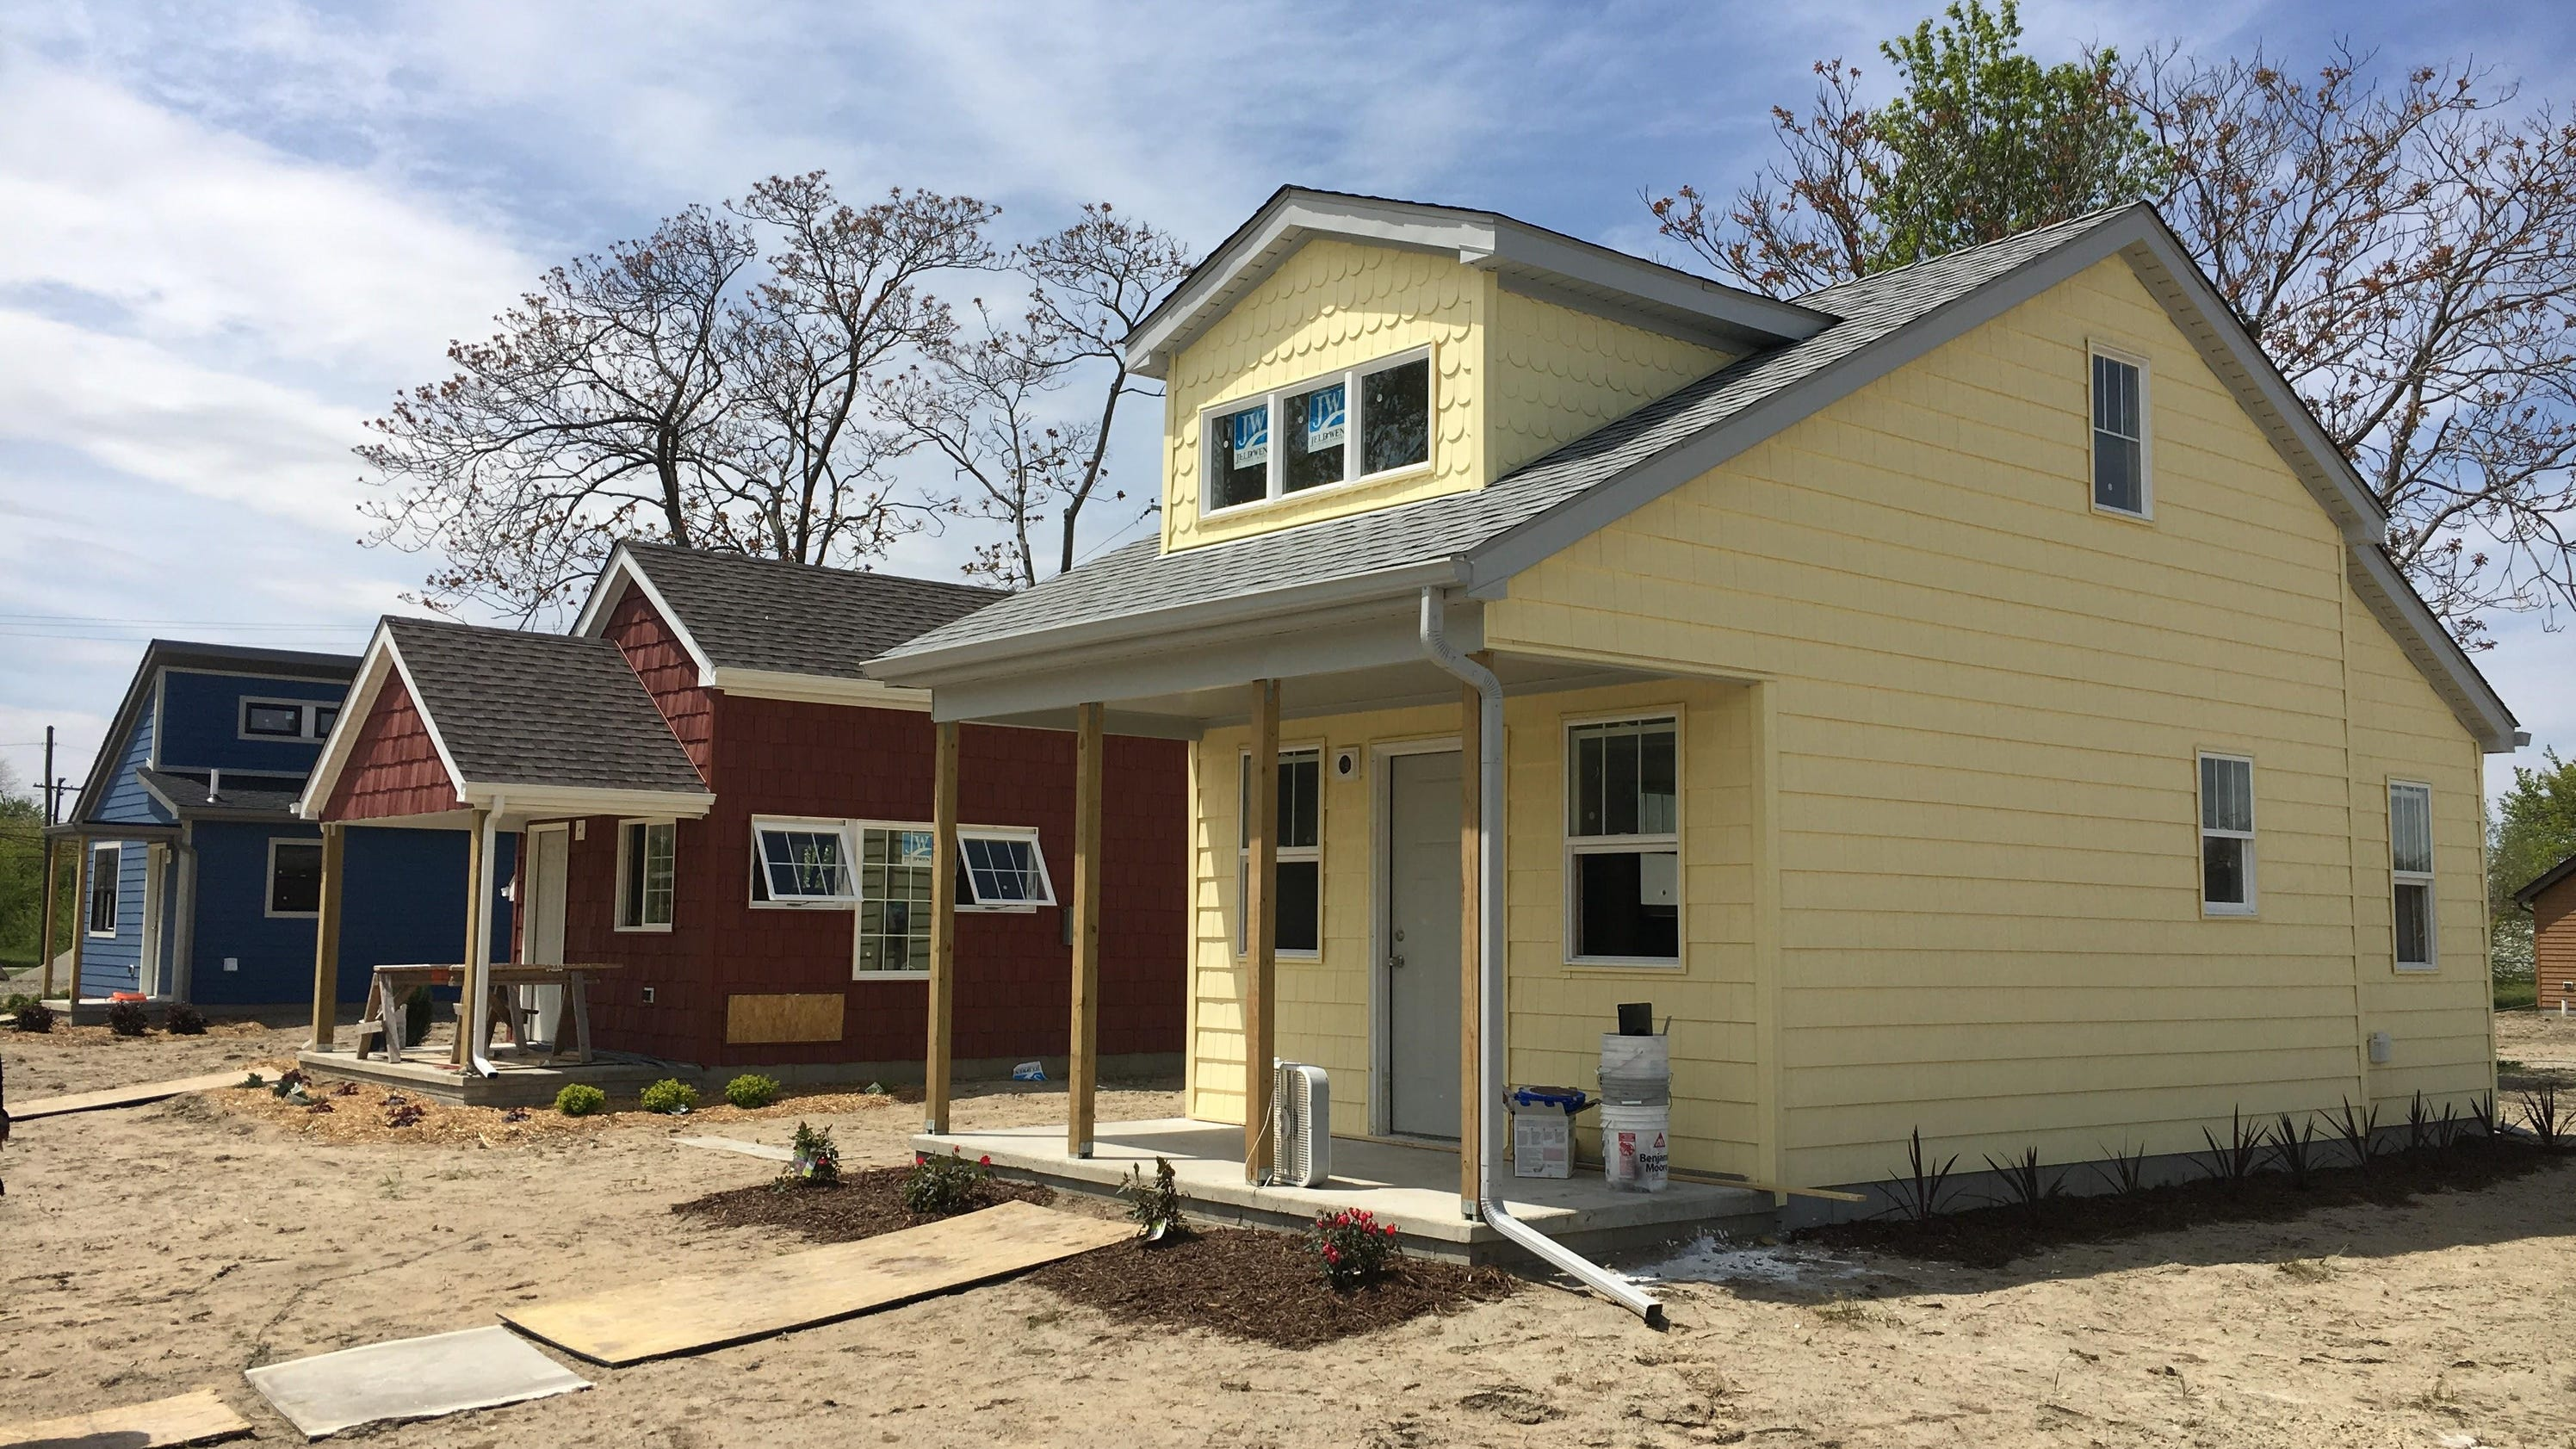 6 Tiny Homes Open In Detroit For Weekend Fundraiser